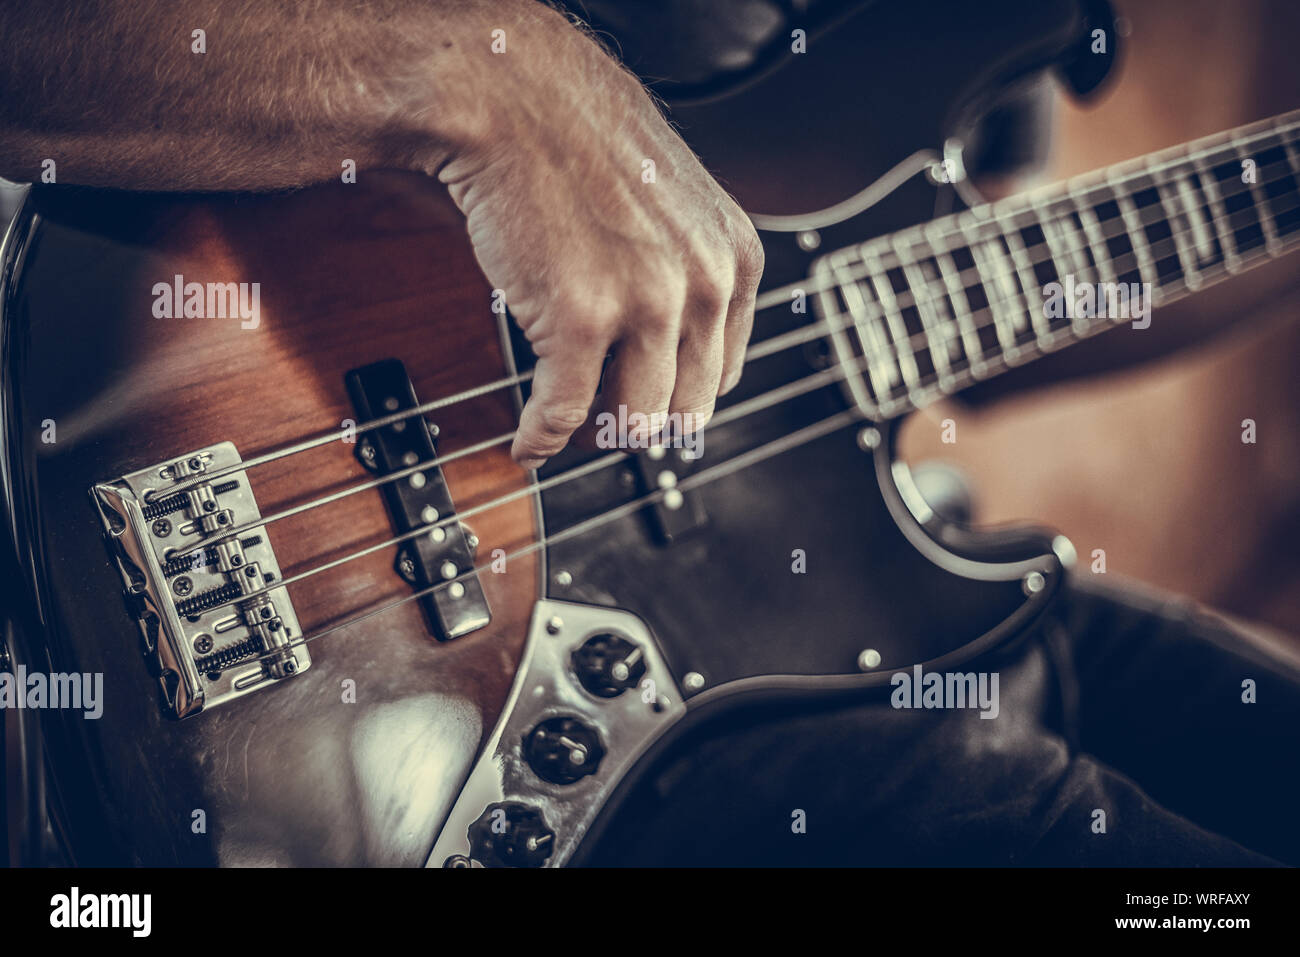 A man plays a bass guitar Stock Photo